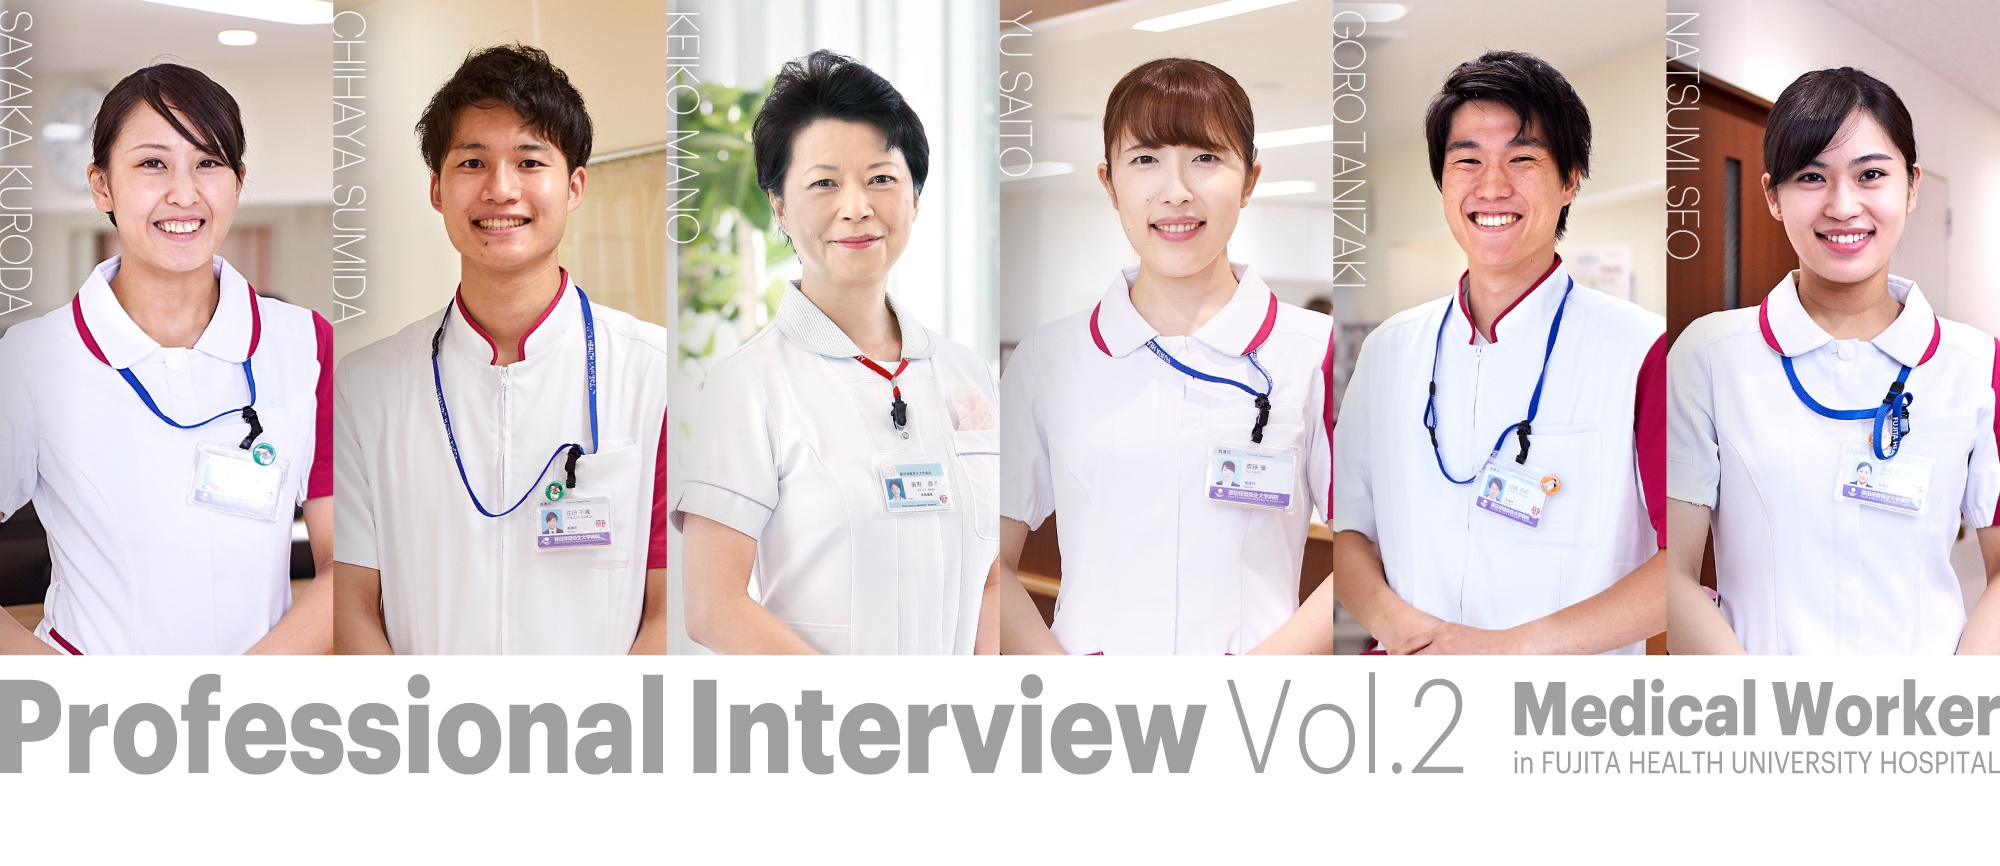 Professional Interview Vol.2 Medical Worker in FUJITA HEALTH UNIVERSITY HOSPITAL